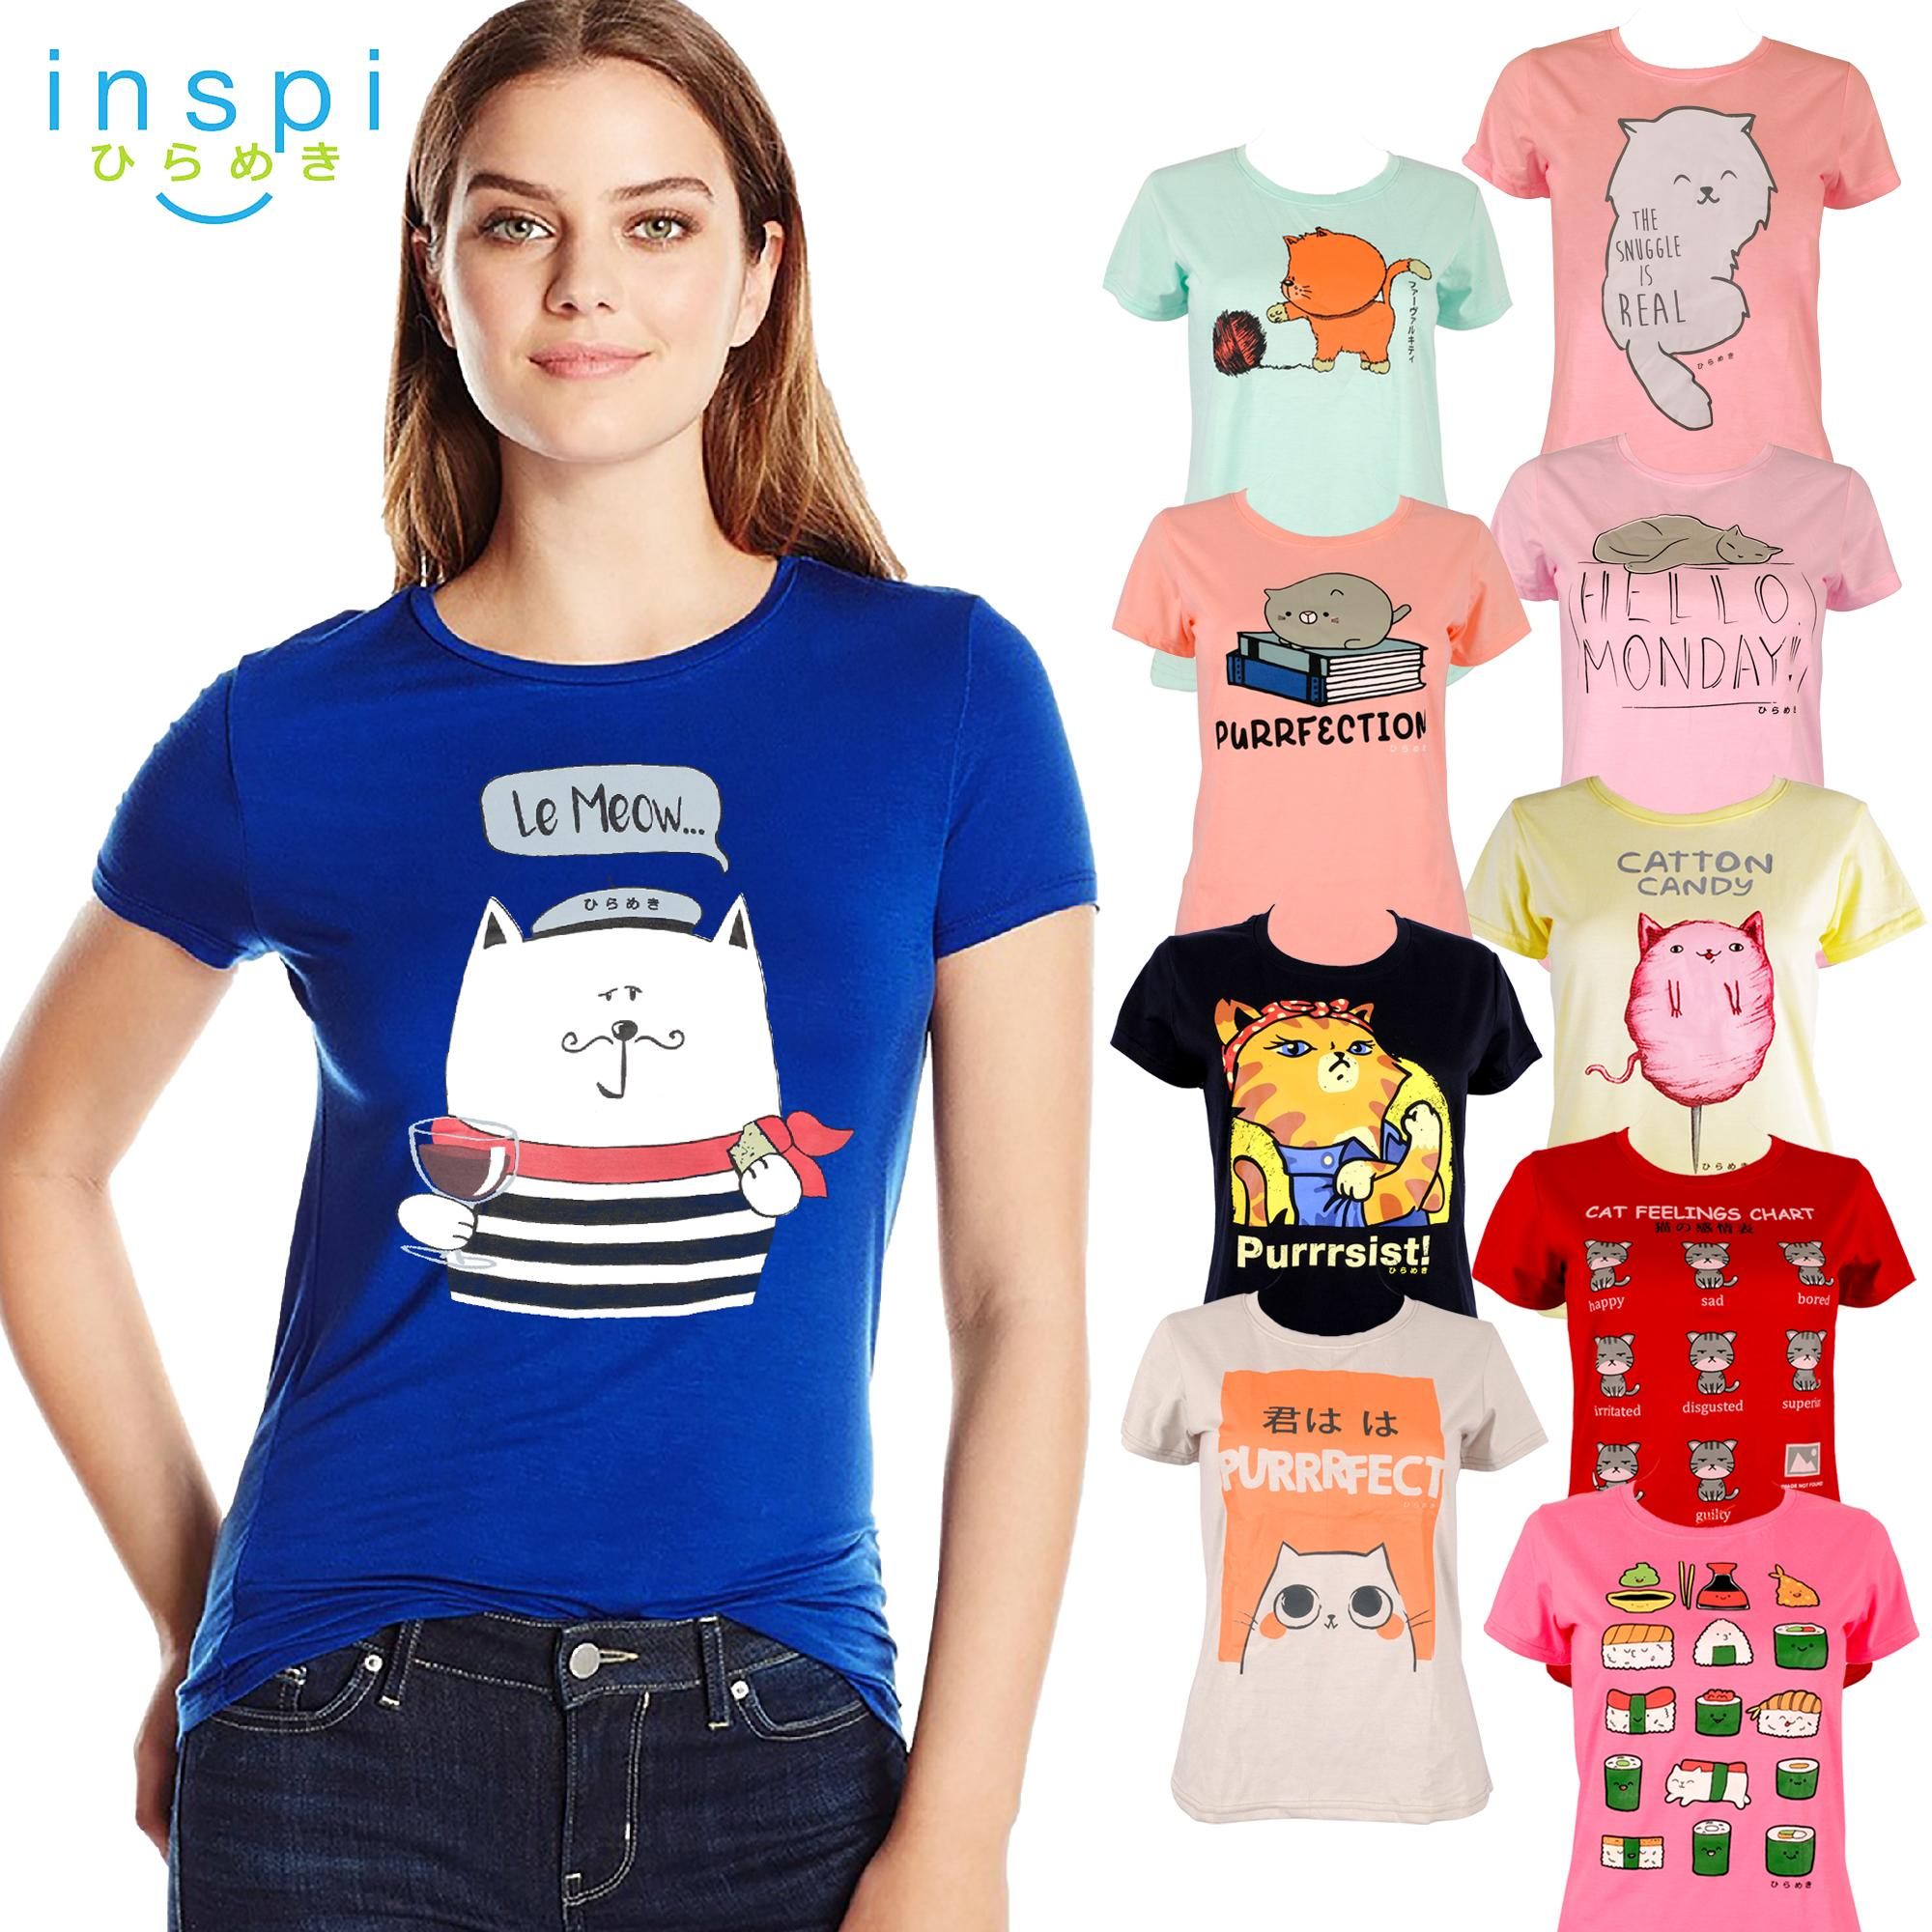 e9d8ae2c42d INSPI Tees Ladies Neko Collection tshirt printed graphic tee Ladies t shirt  shirts women tshirts for